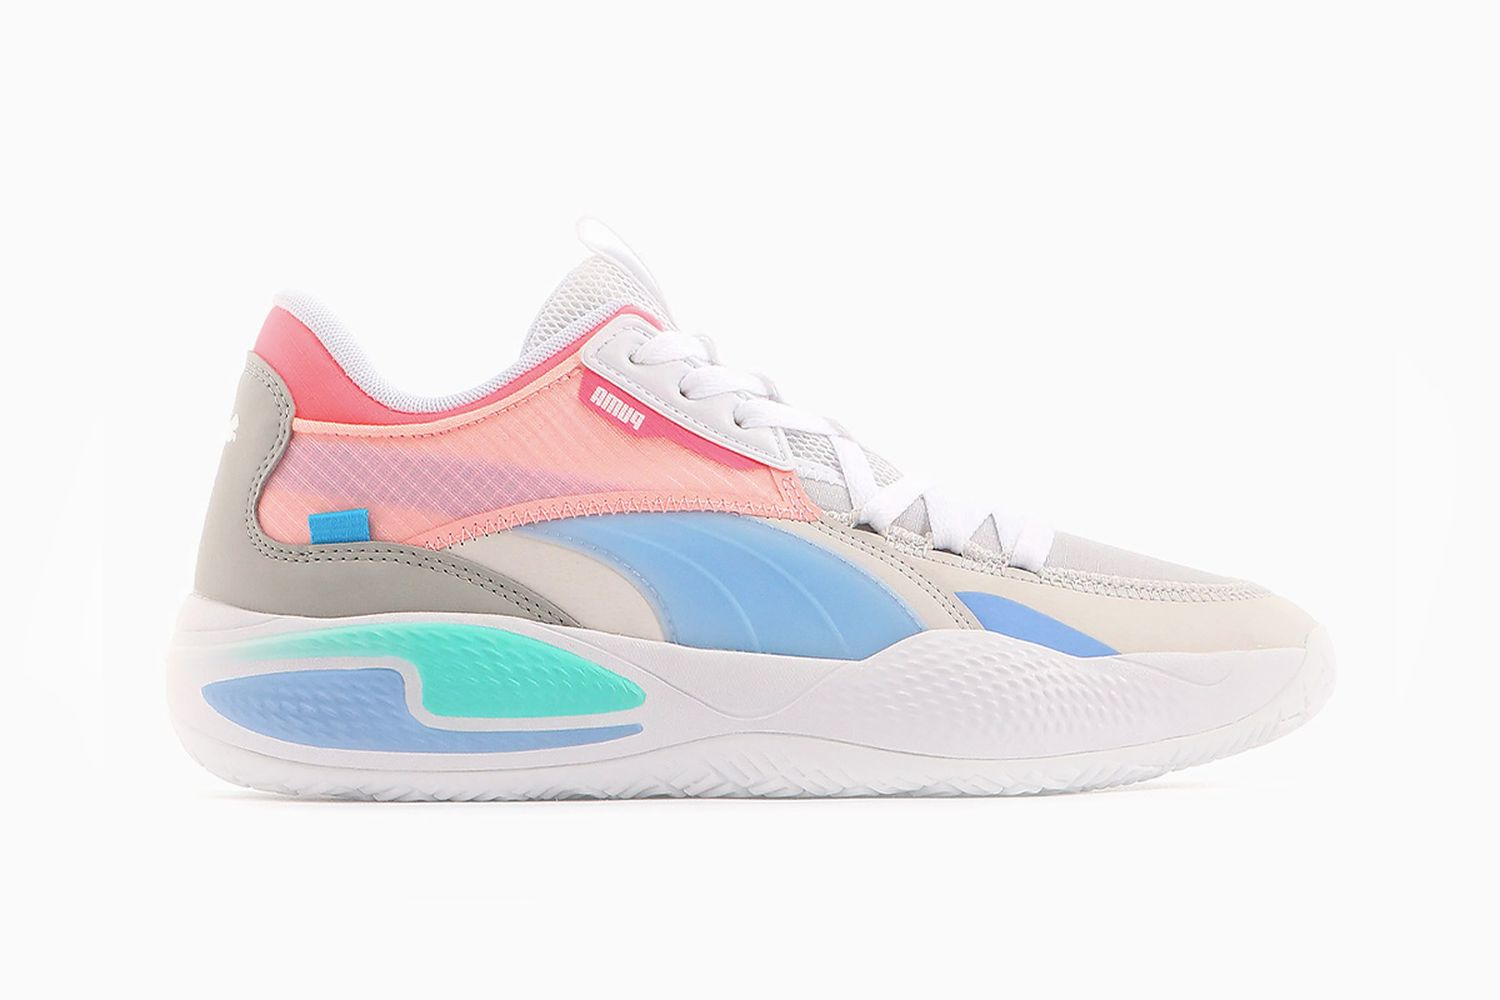 Court Rider Twofold Sneakers